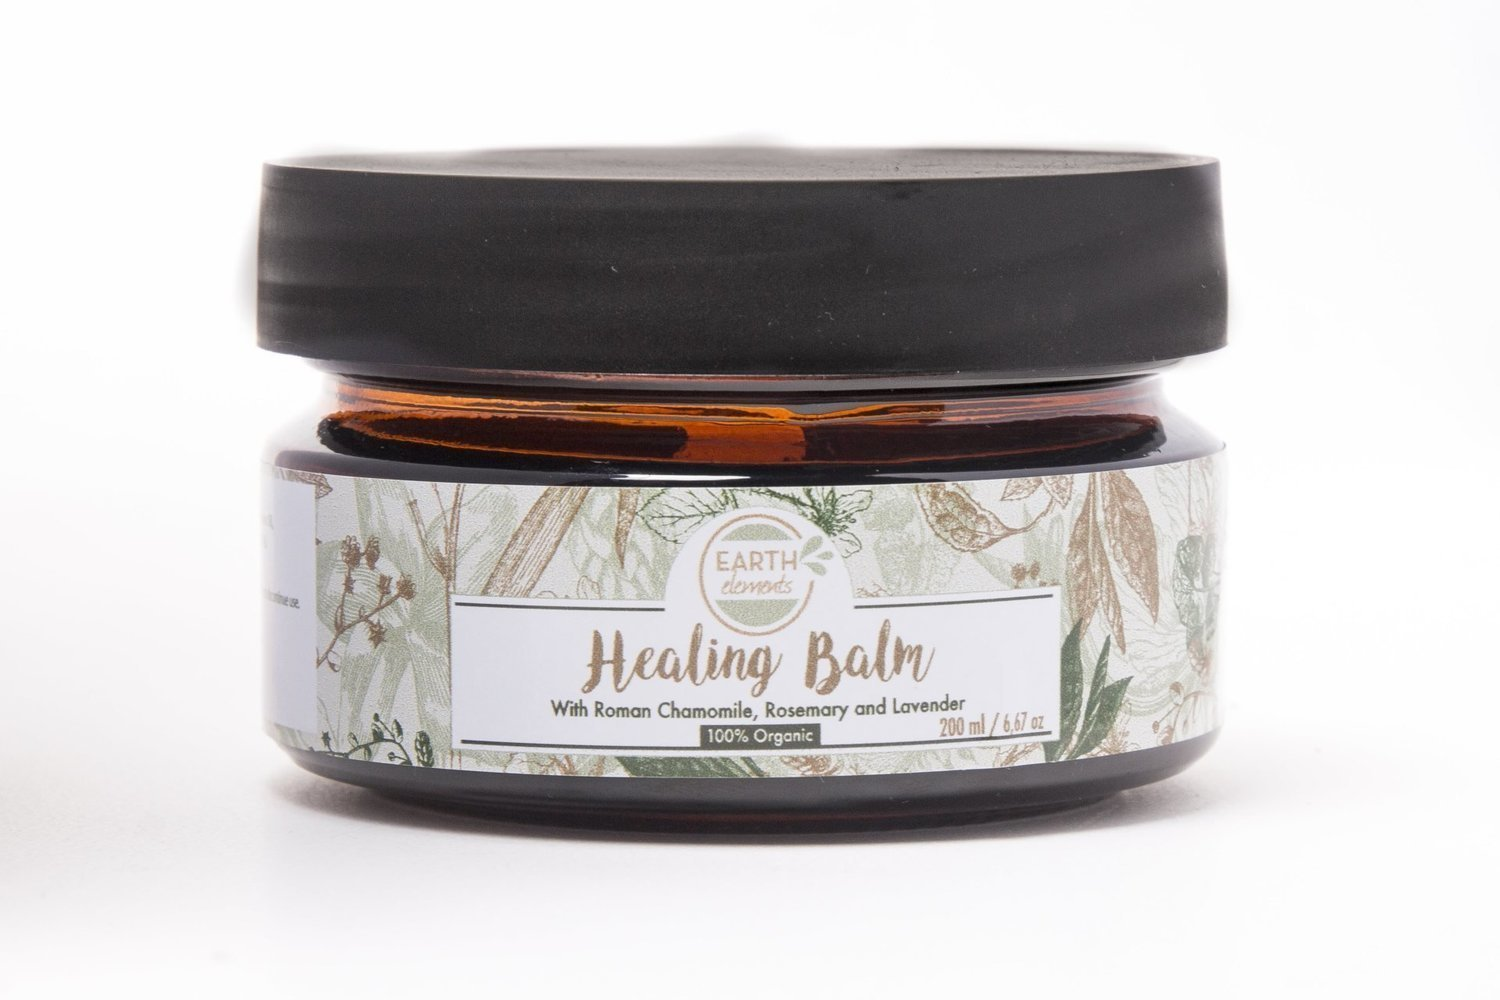 Healing Balm - Age defying Shea Butter and Baobab Oil